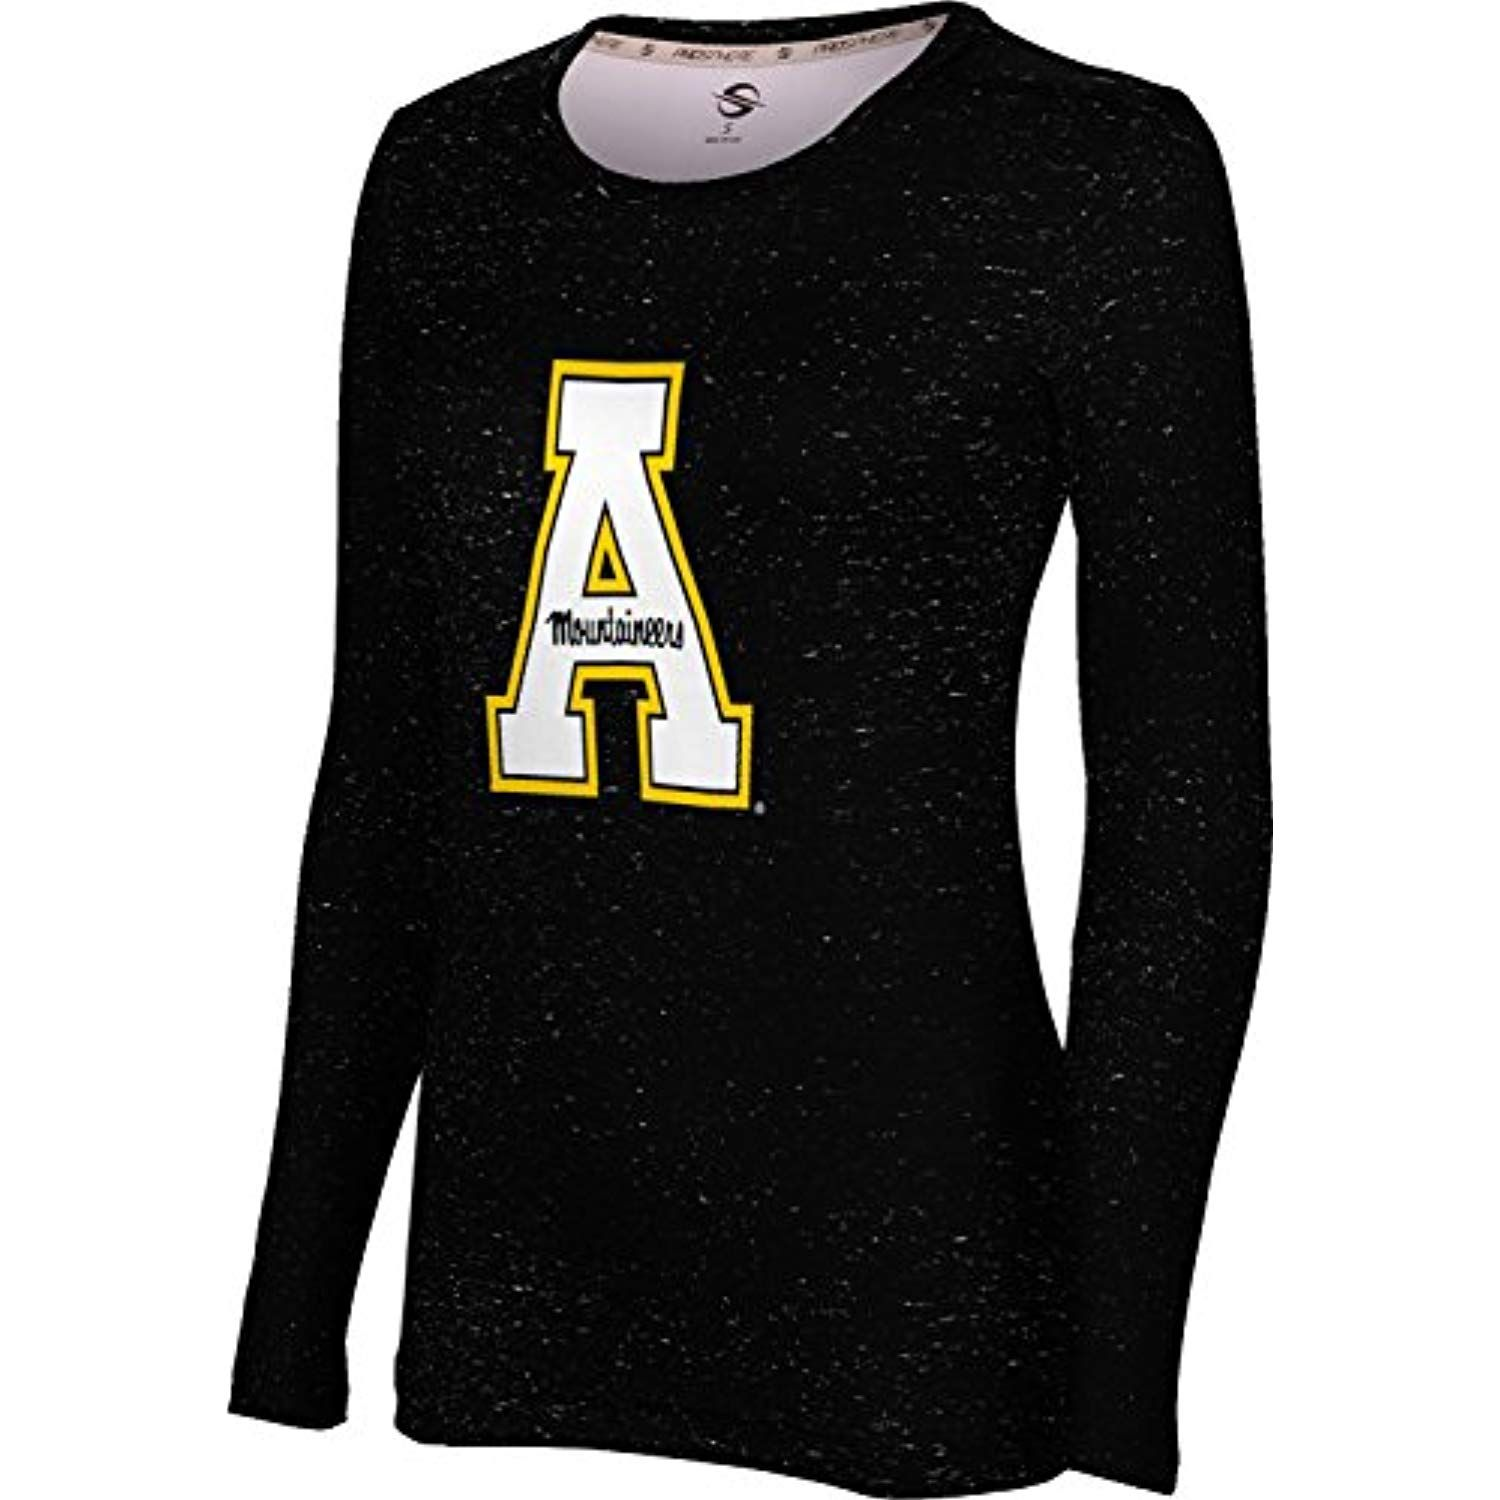 4dfc801c Appalachian State University Women's Long Sleeve Tee - Heathered >>> You  can get additional details at the image link. (This is an affiliate link) # clothing